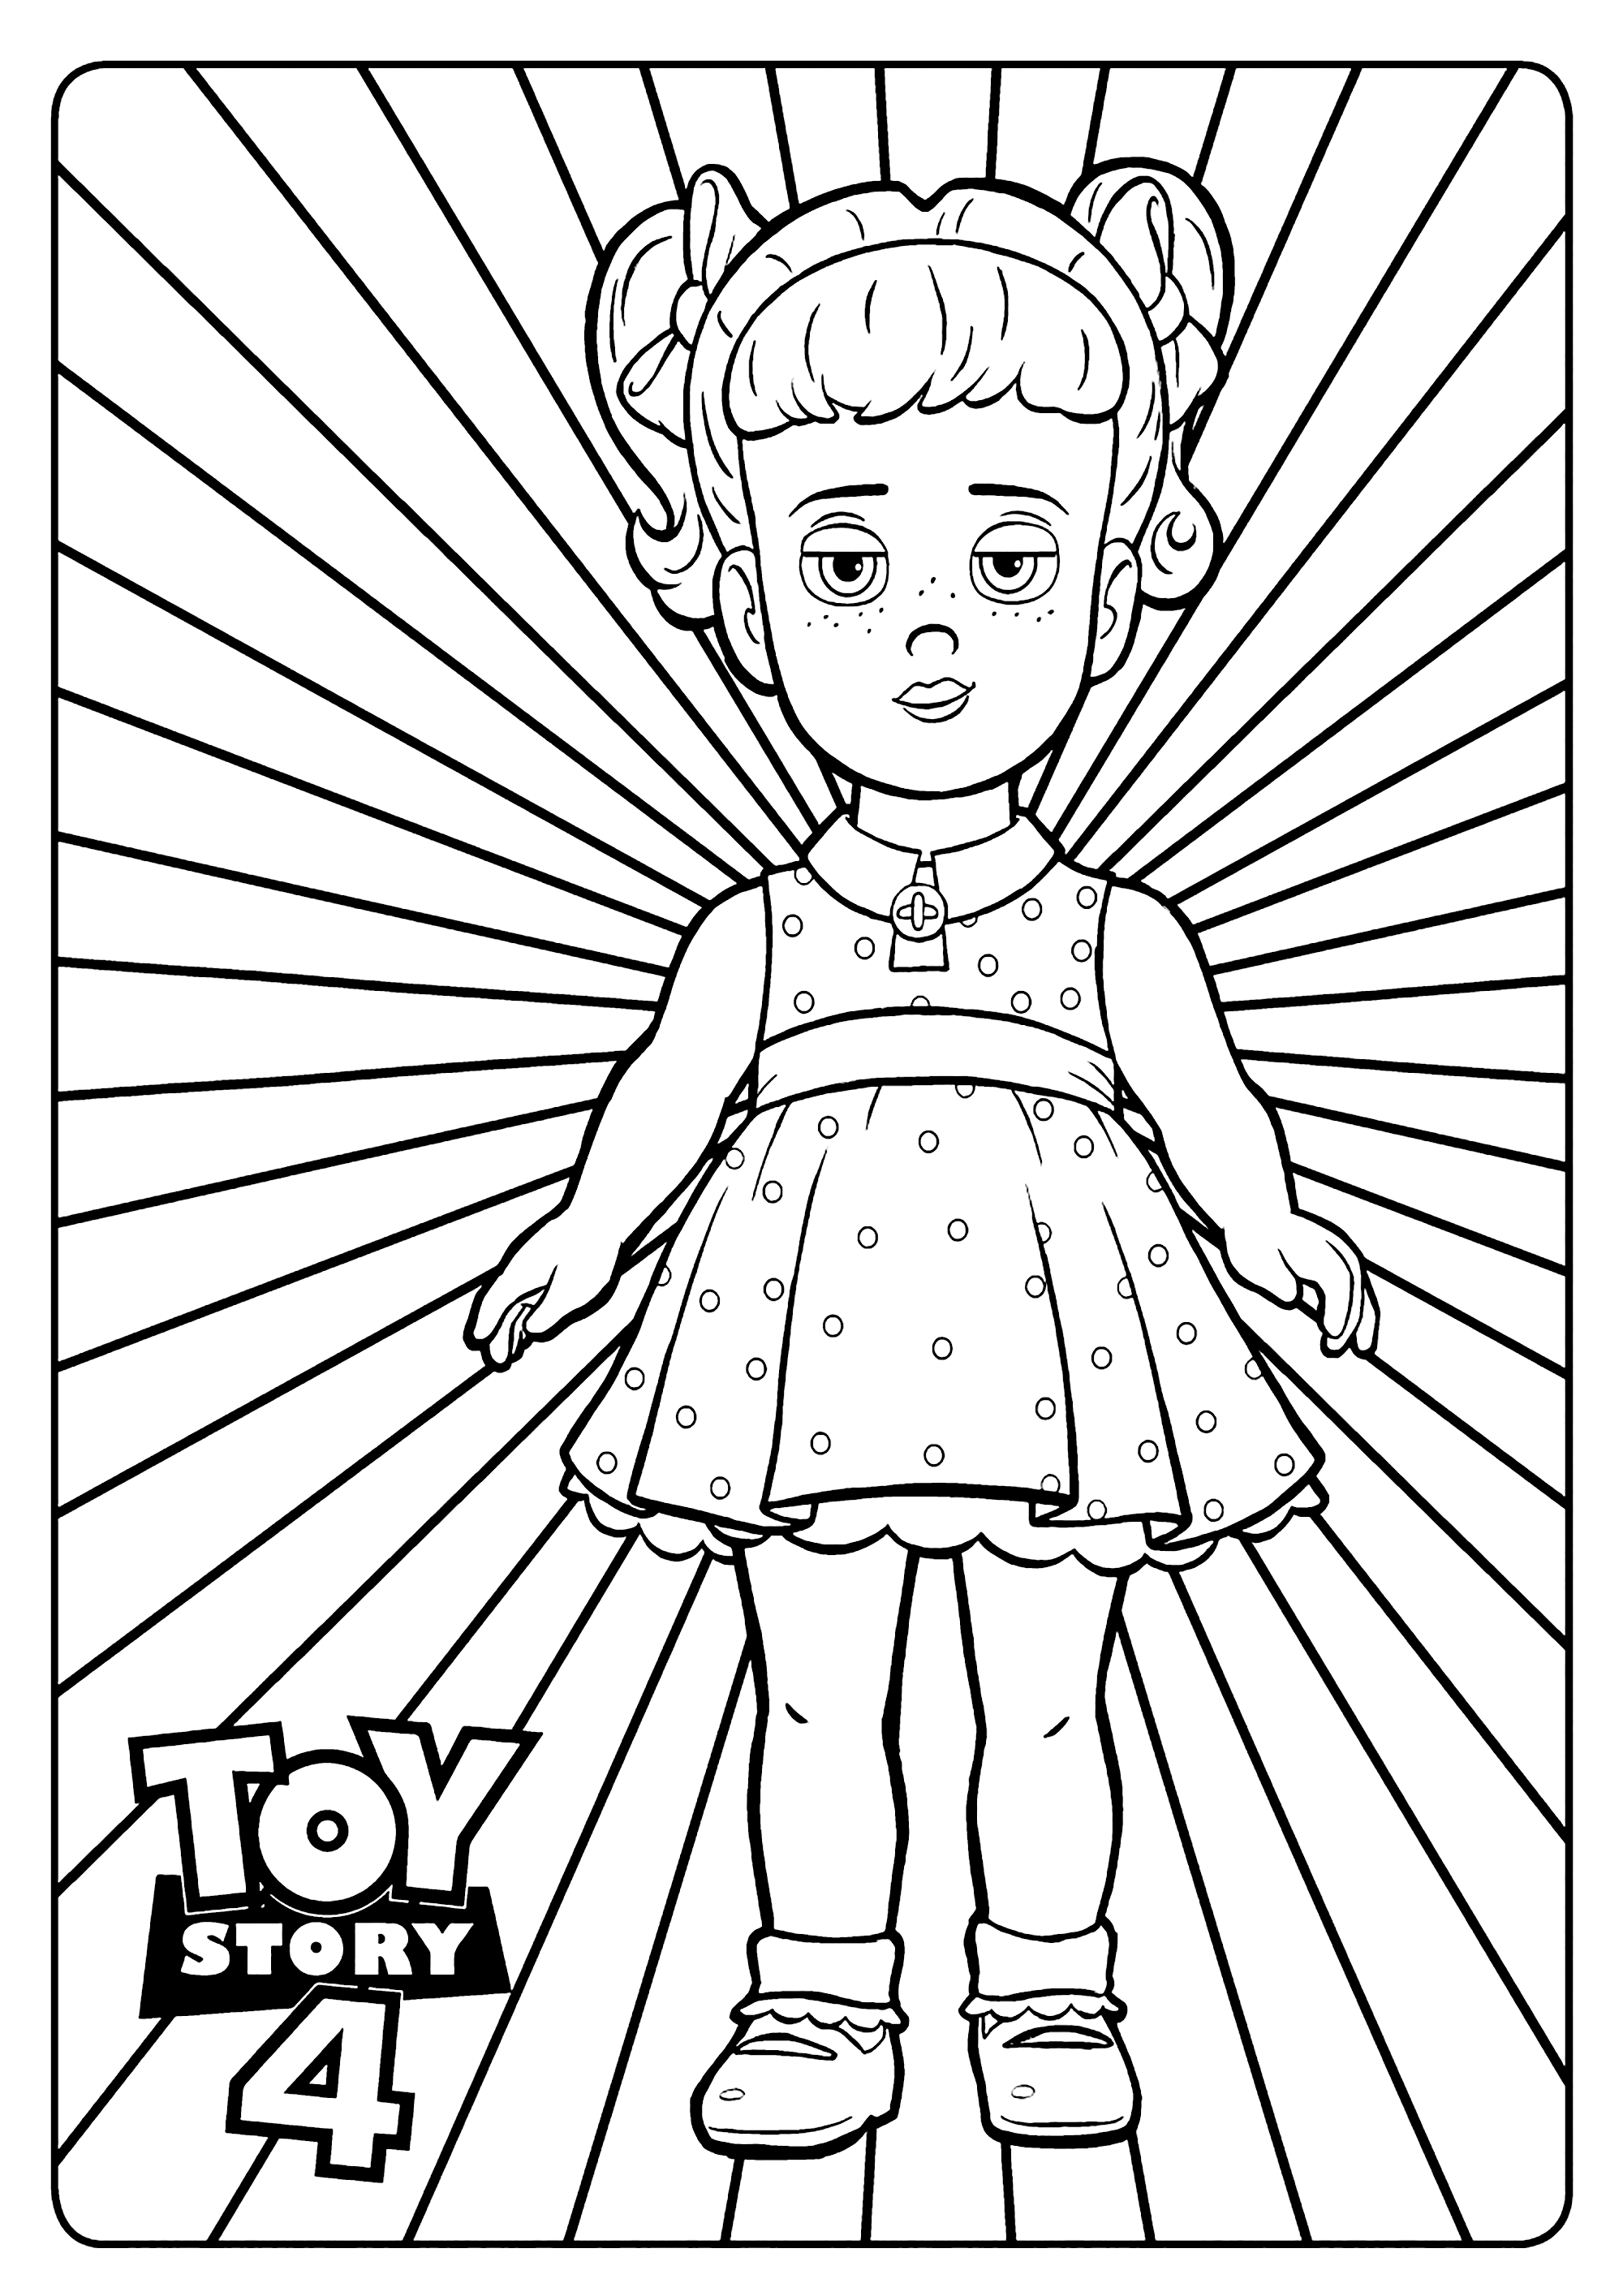 toy story 4 coloring toy story 4 coloring pages to you toy story 4 coloring toy story 4 coloring